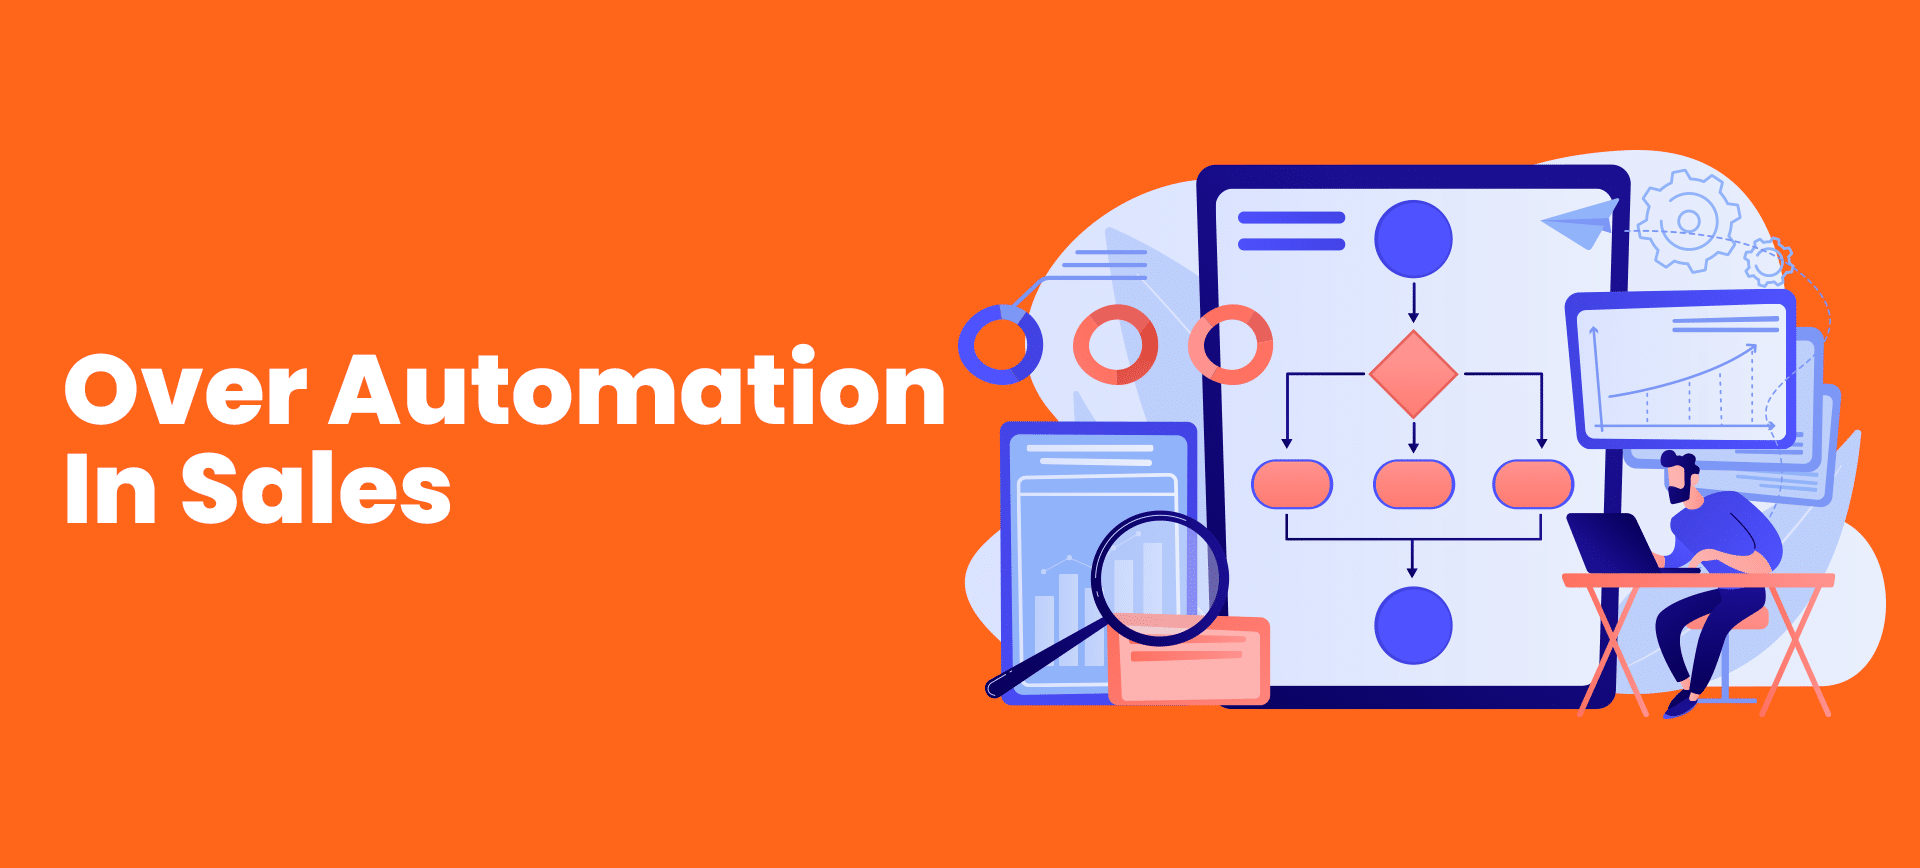 Over Automation In Sales